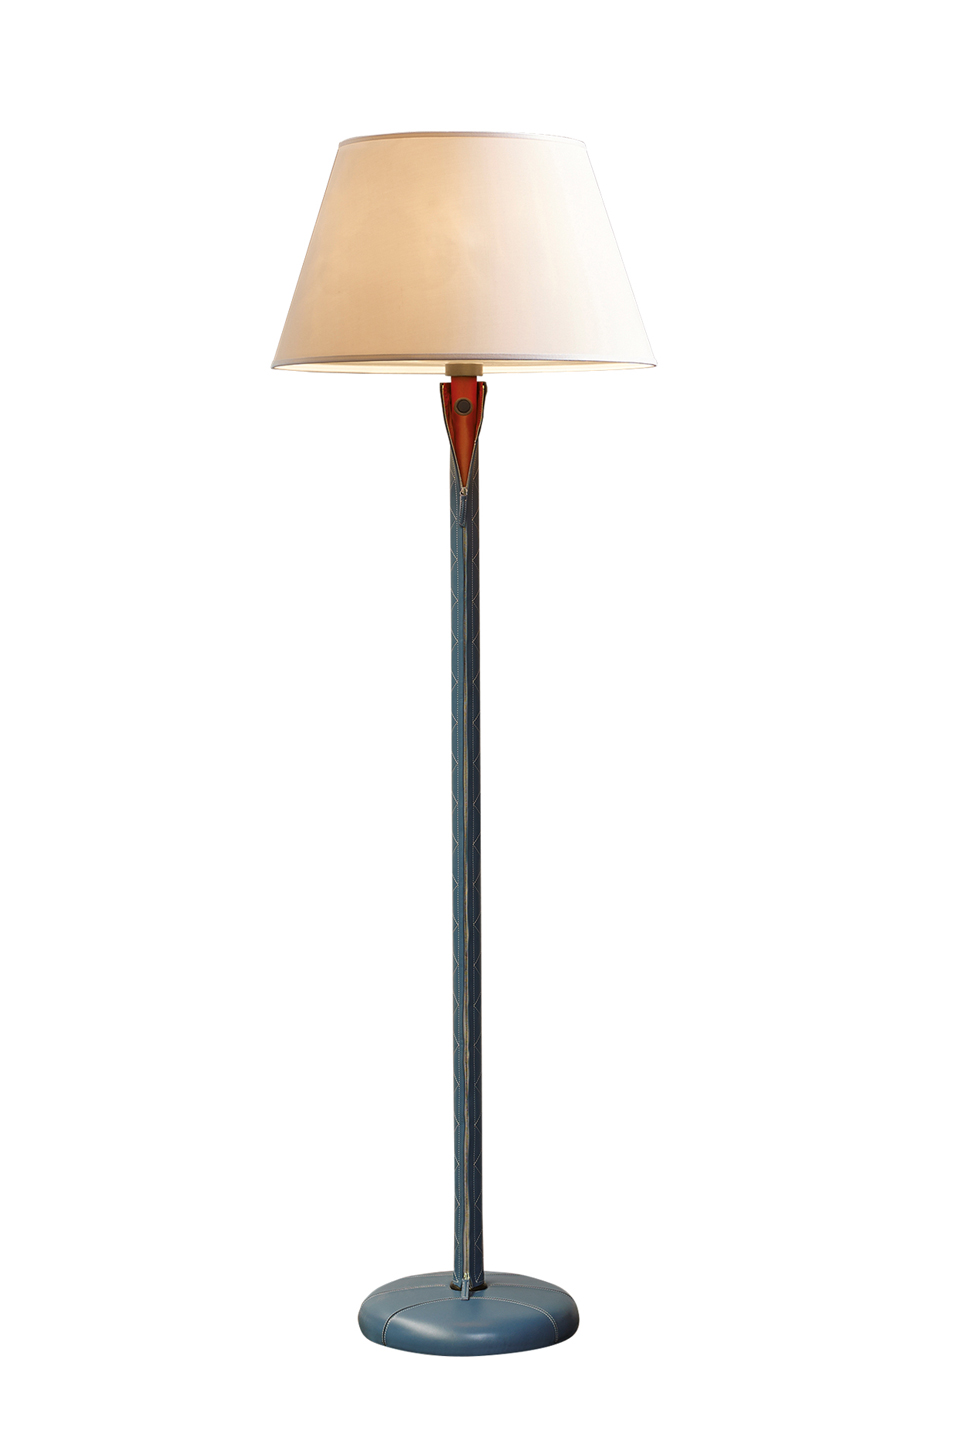 Zip is a floor LED lamp with a wooden structure that can be covered in leather with bronze details, a linen, cotton or silk with handmade edge lampshade and methacrylate diffusers, from Promemoria's catalogue | Promemoria